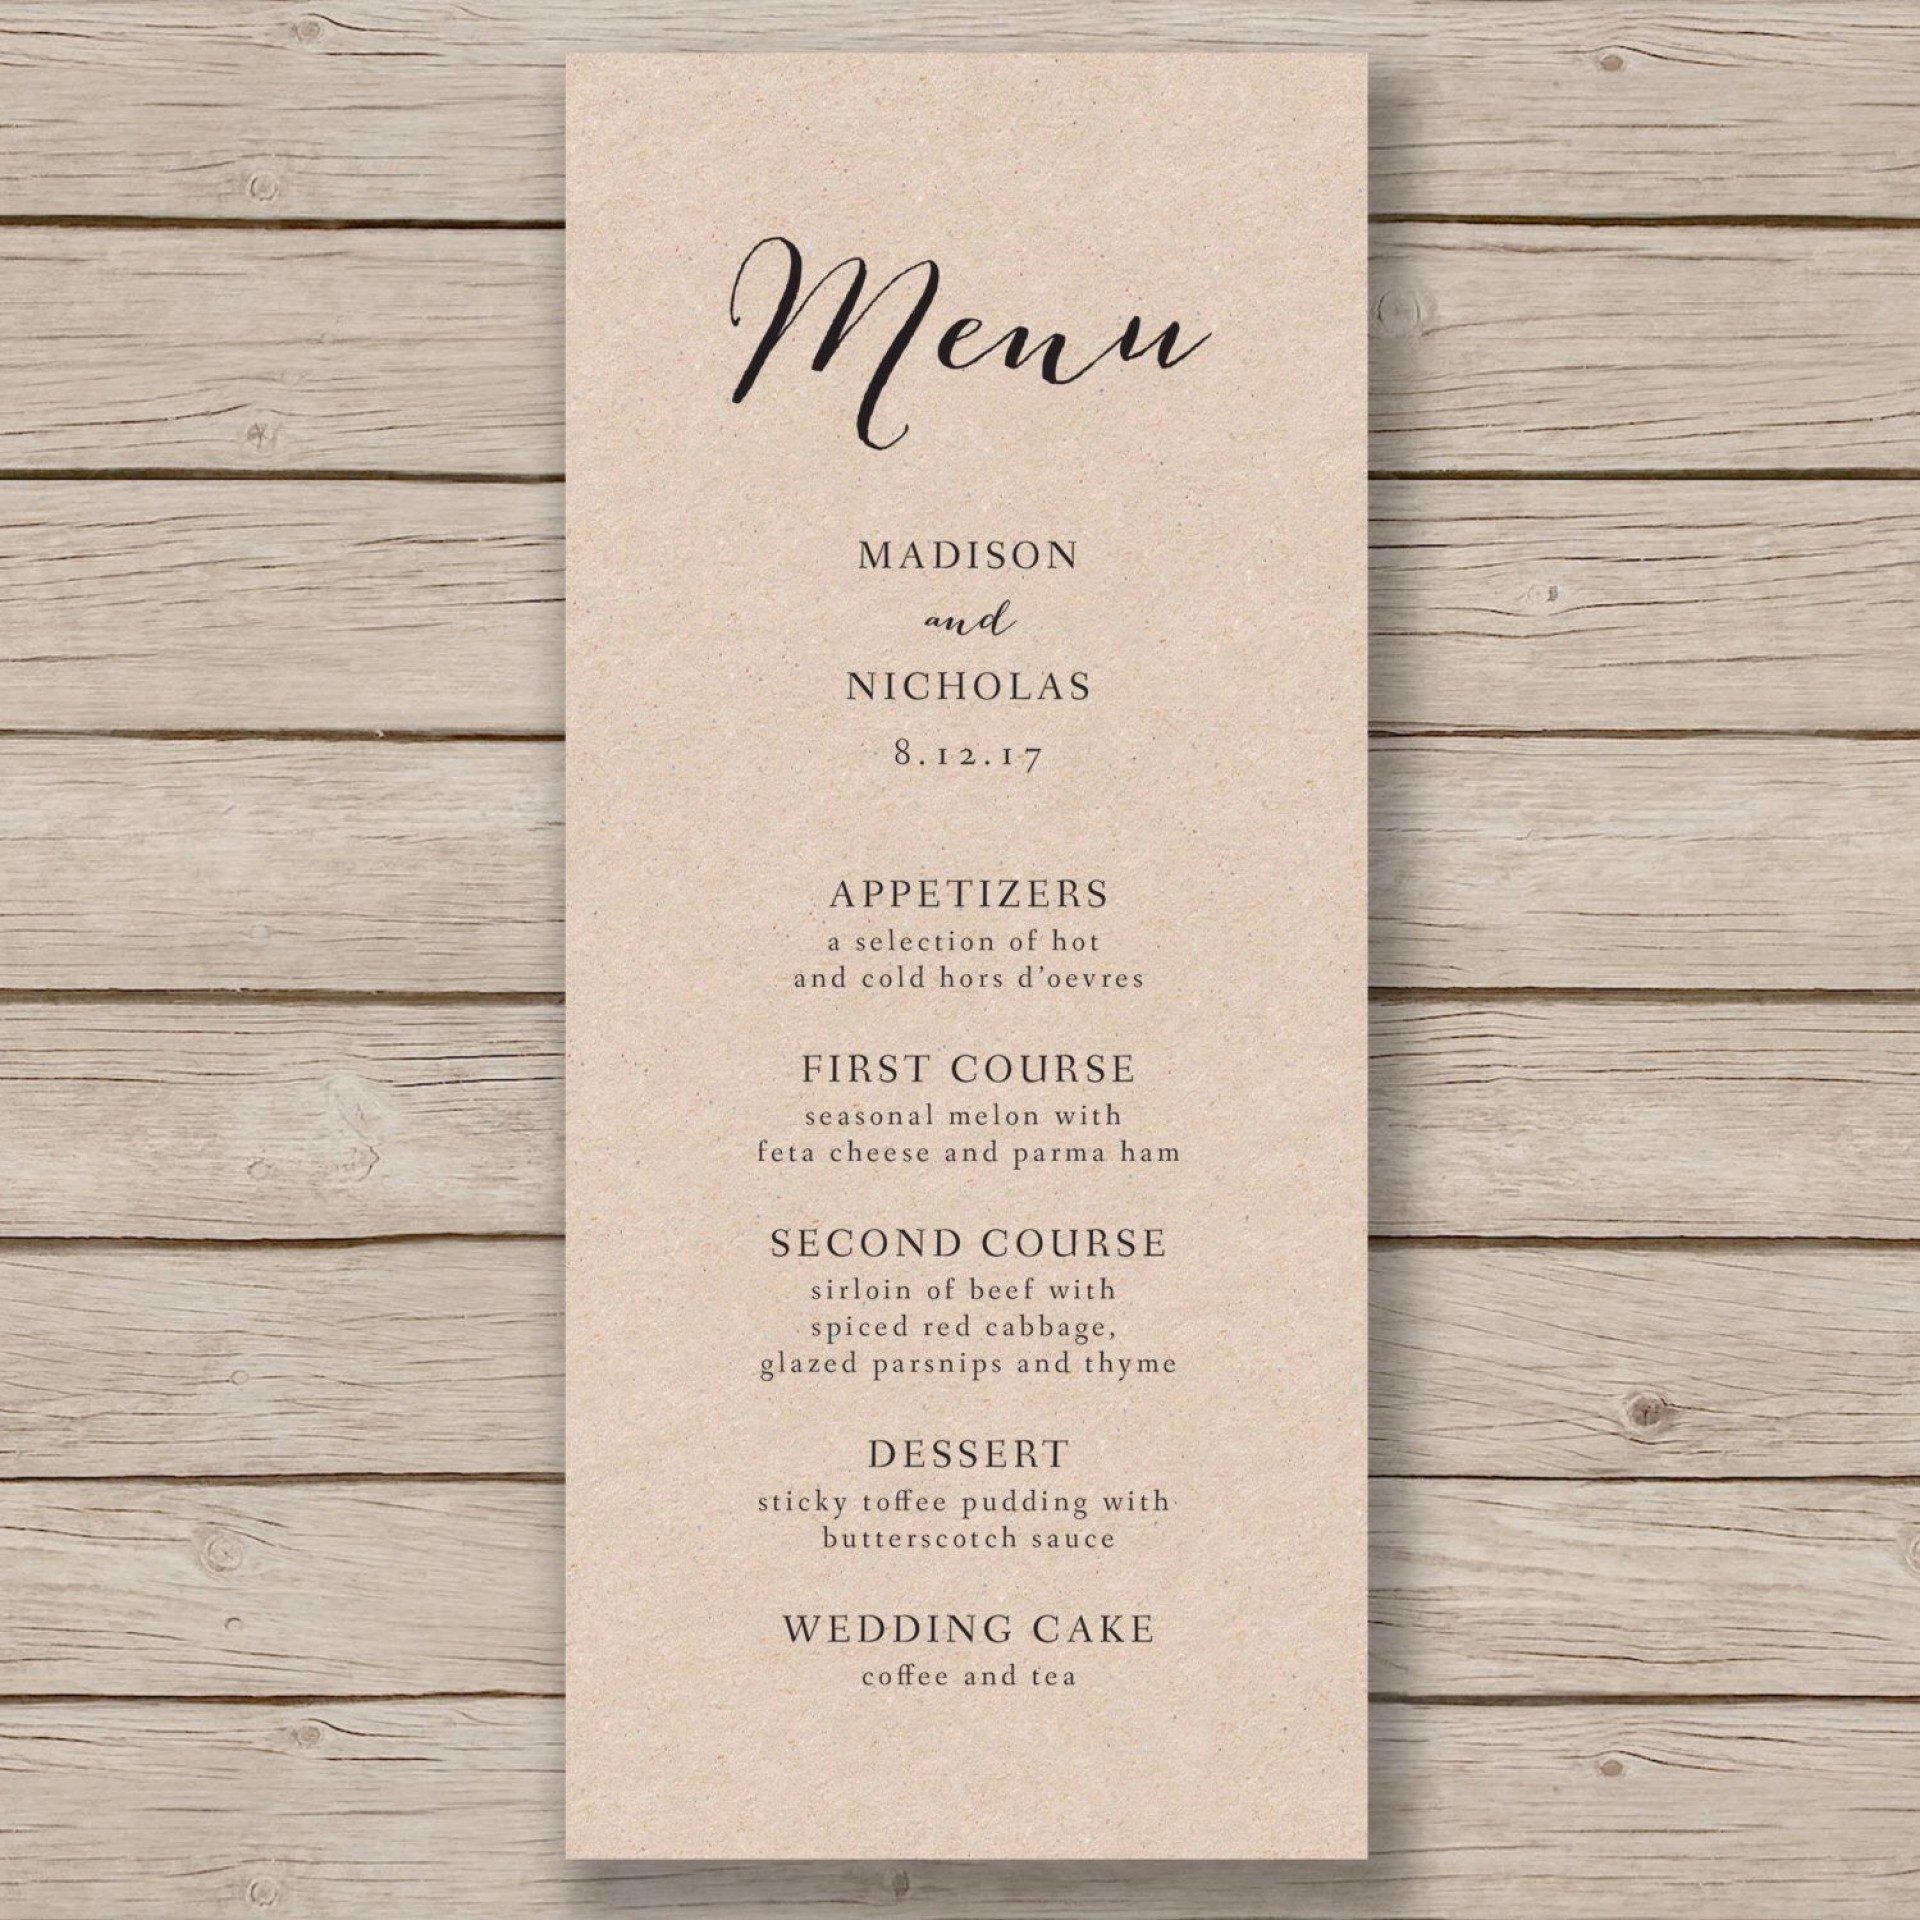 006 Archaicawful Free Wedding Menu Template Concept  Templates Printable For Mac1920